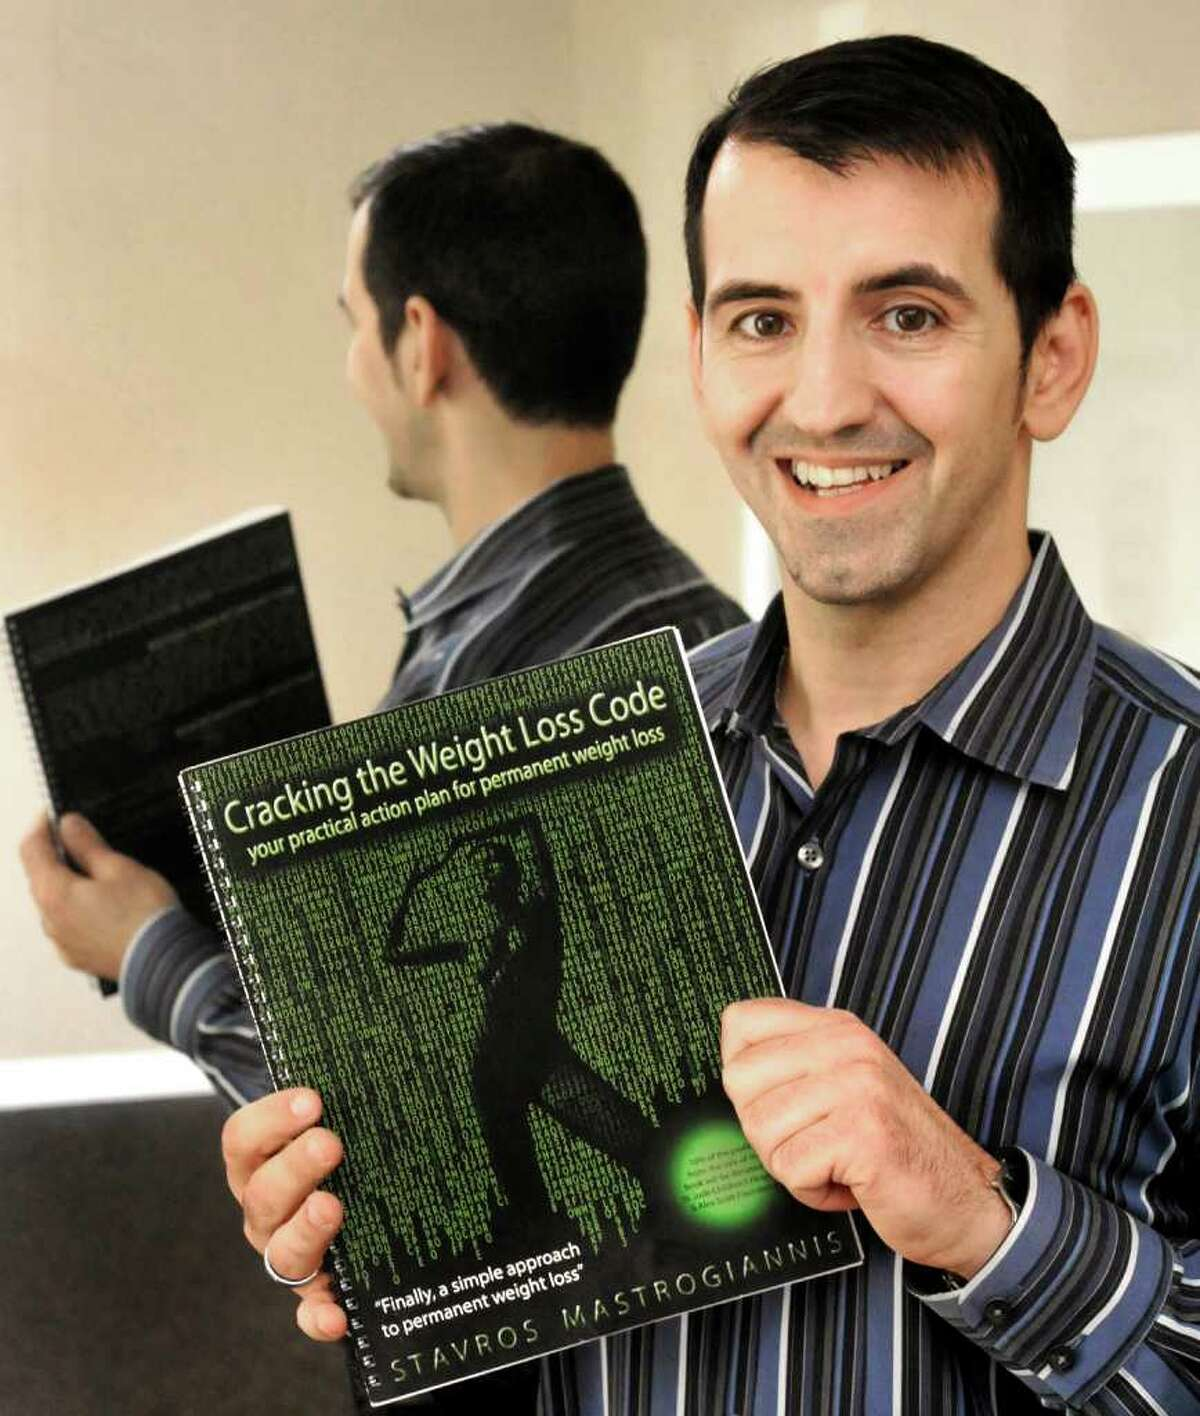 Stavros Mastrogiannis holds his new book, Cracking the Weight Loss Code, at Olympus Personal Training & Weight Management in Danbury, Tuesday, Sept. 21, 2010.